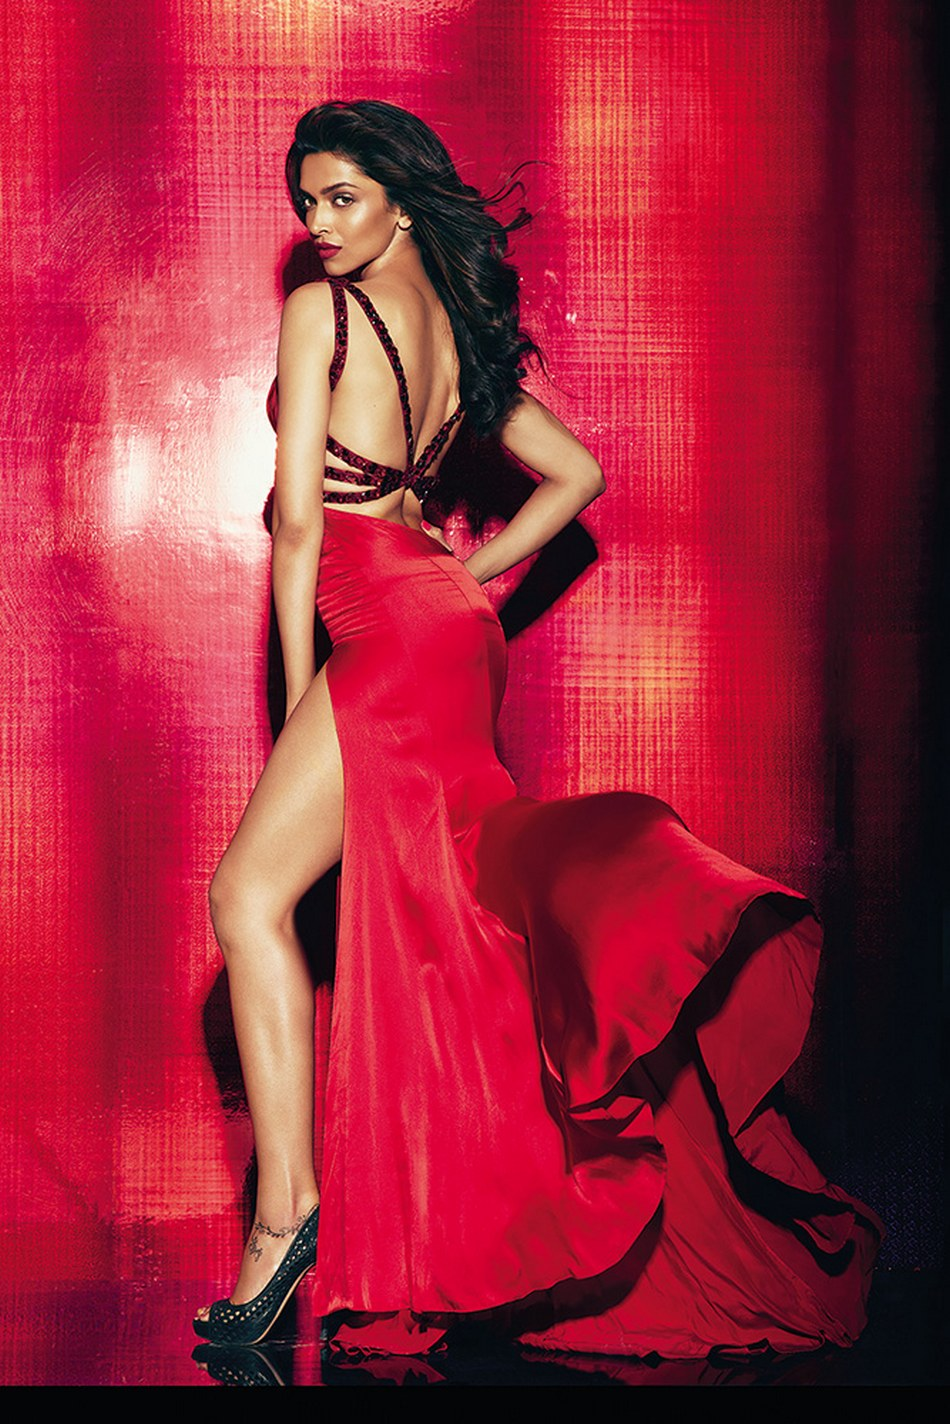 Deepika Padukone Maxim and Vogue Hot Photoshoot HD Stills Photos Images